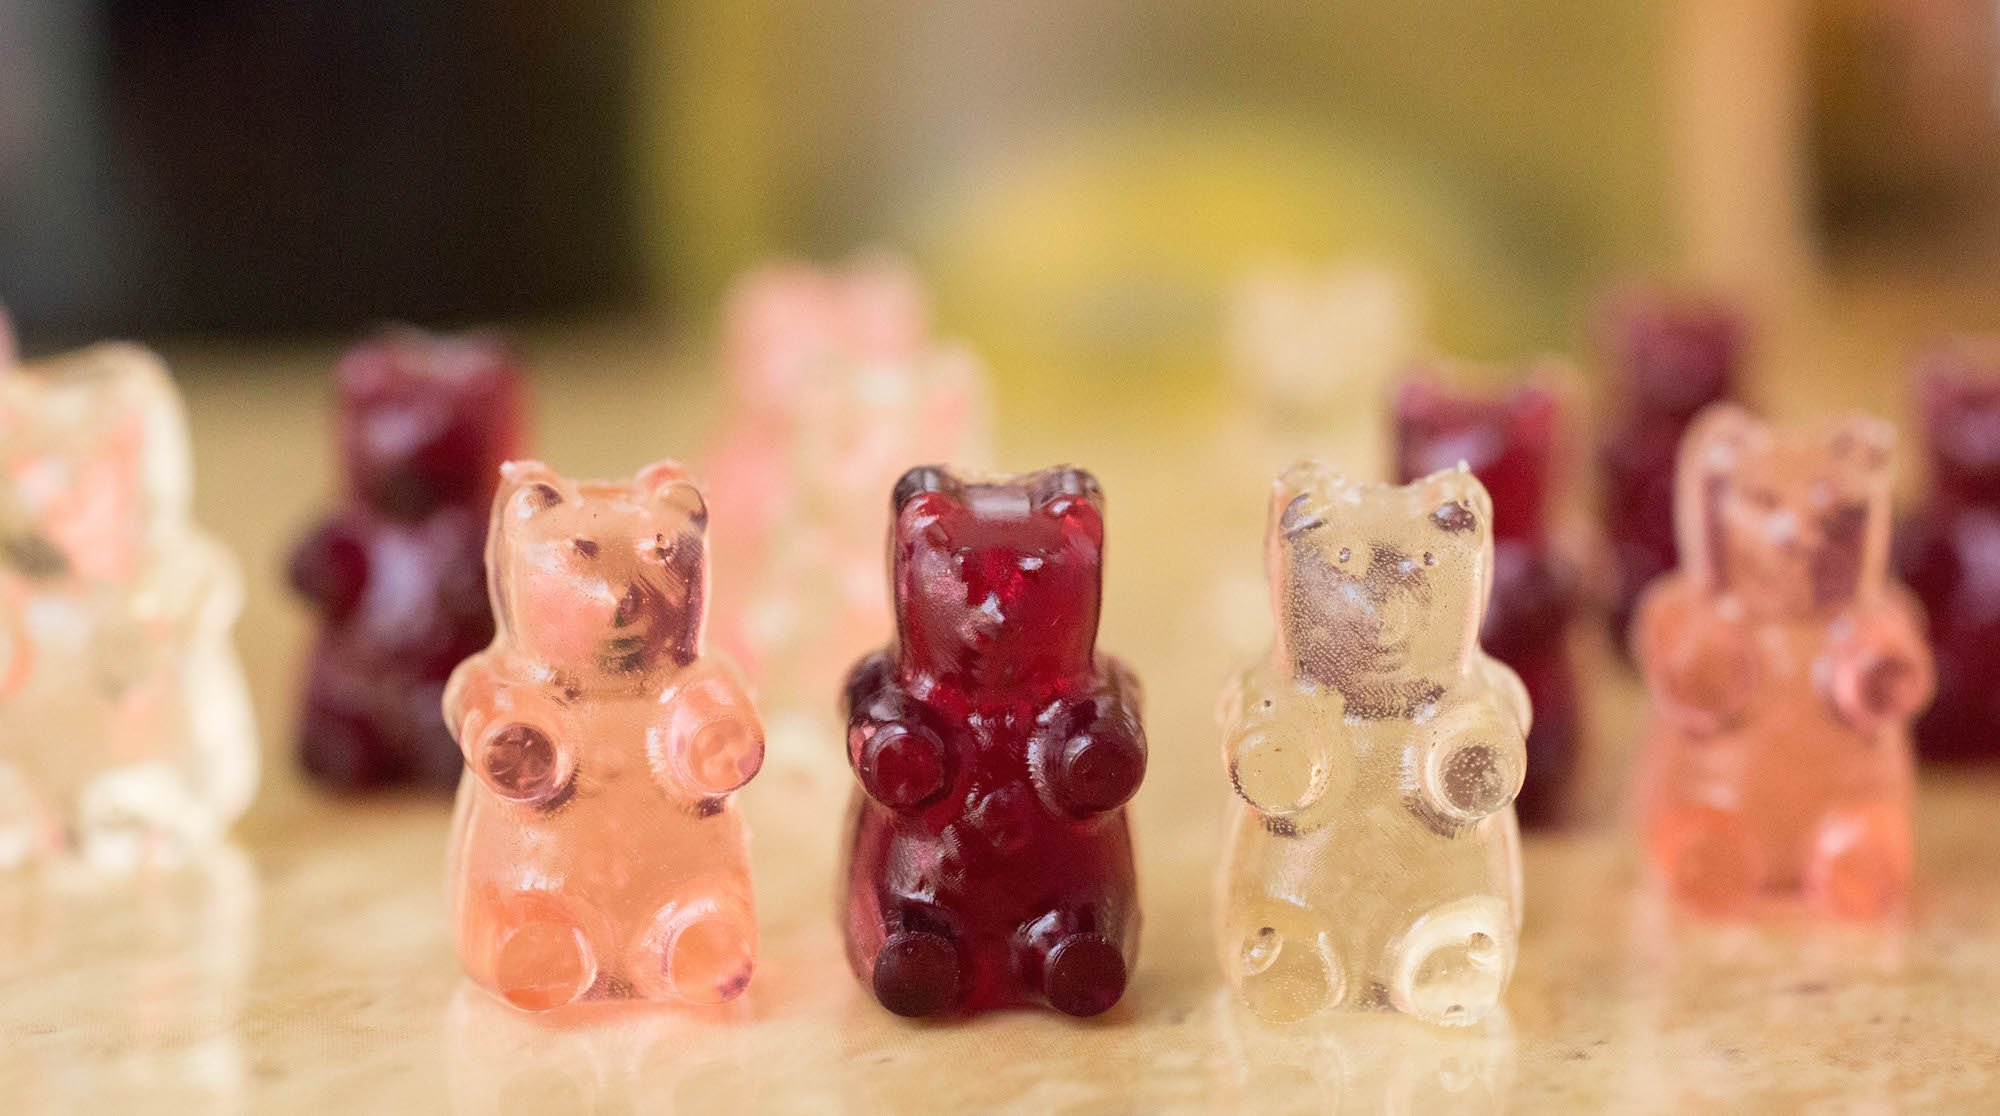 Haribo gummy bears are just one of many products that thomas - An Error Occurred